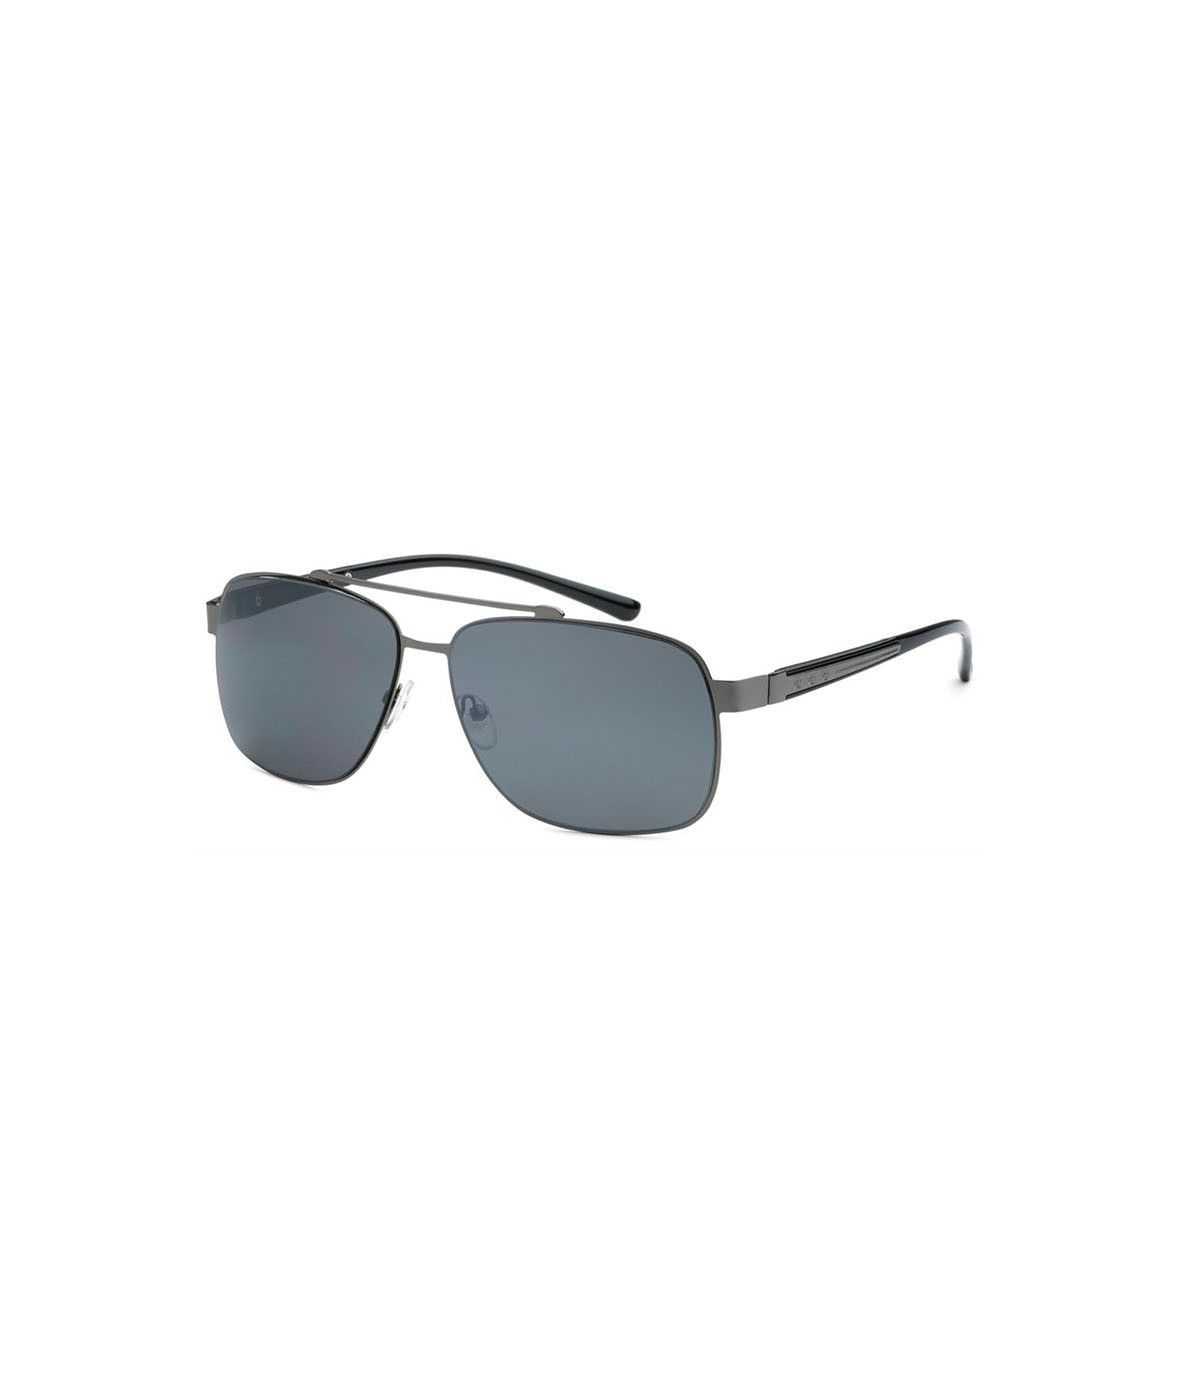 Navigator Sunglasses, Lifetime Guarantee